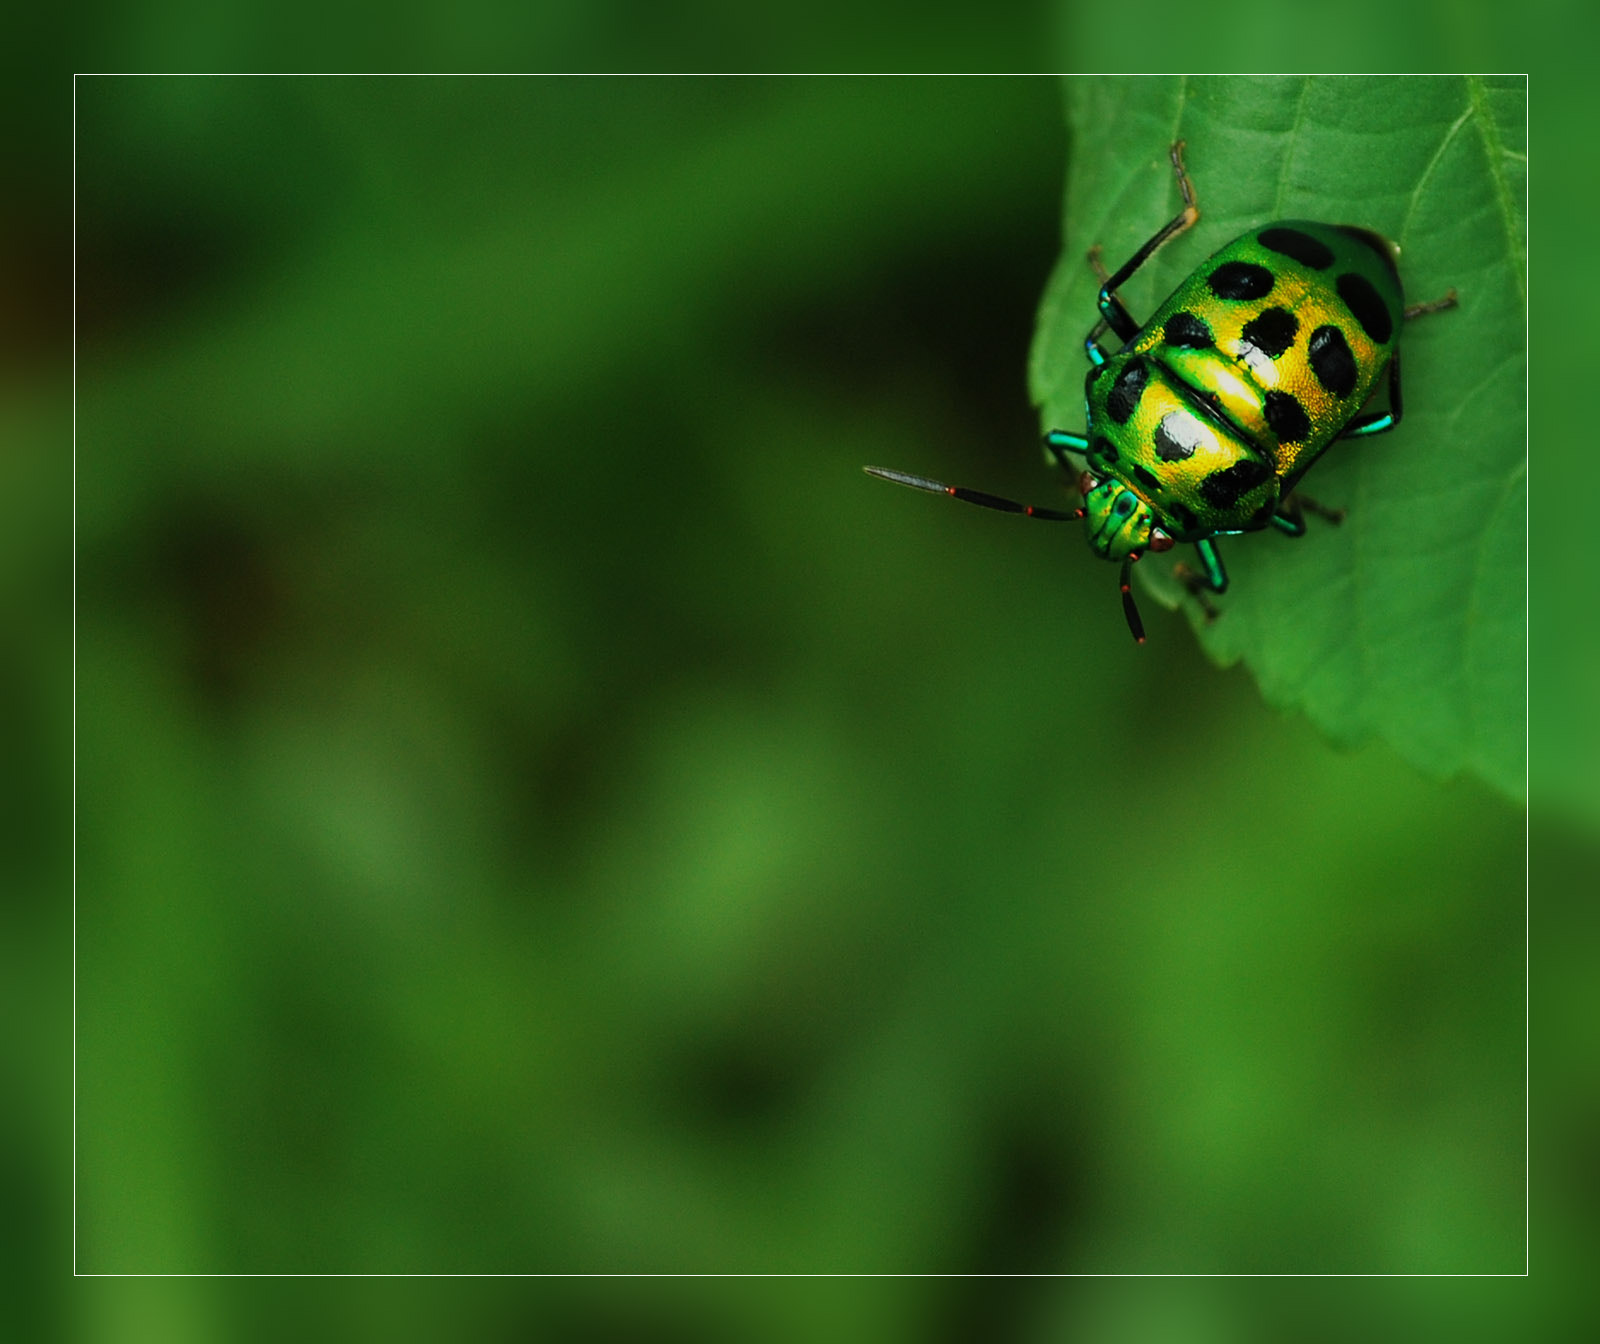 Photograph GREEN ON GREEN by Maroof Rana on 500px